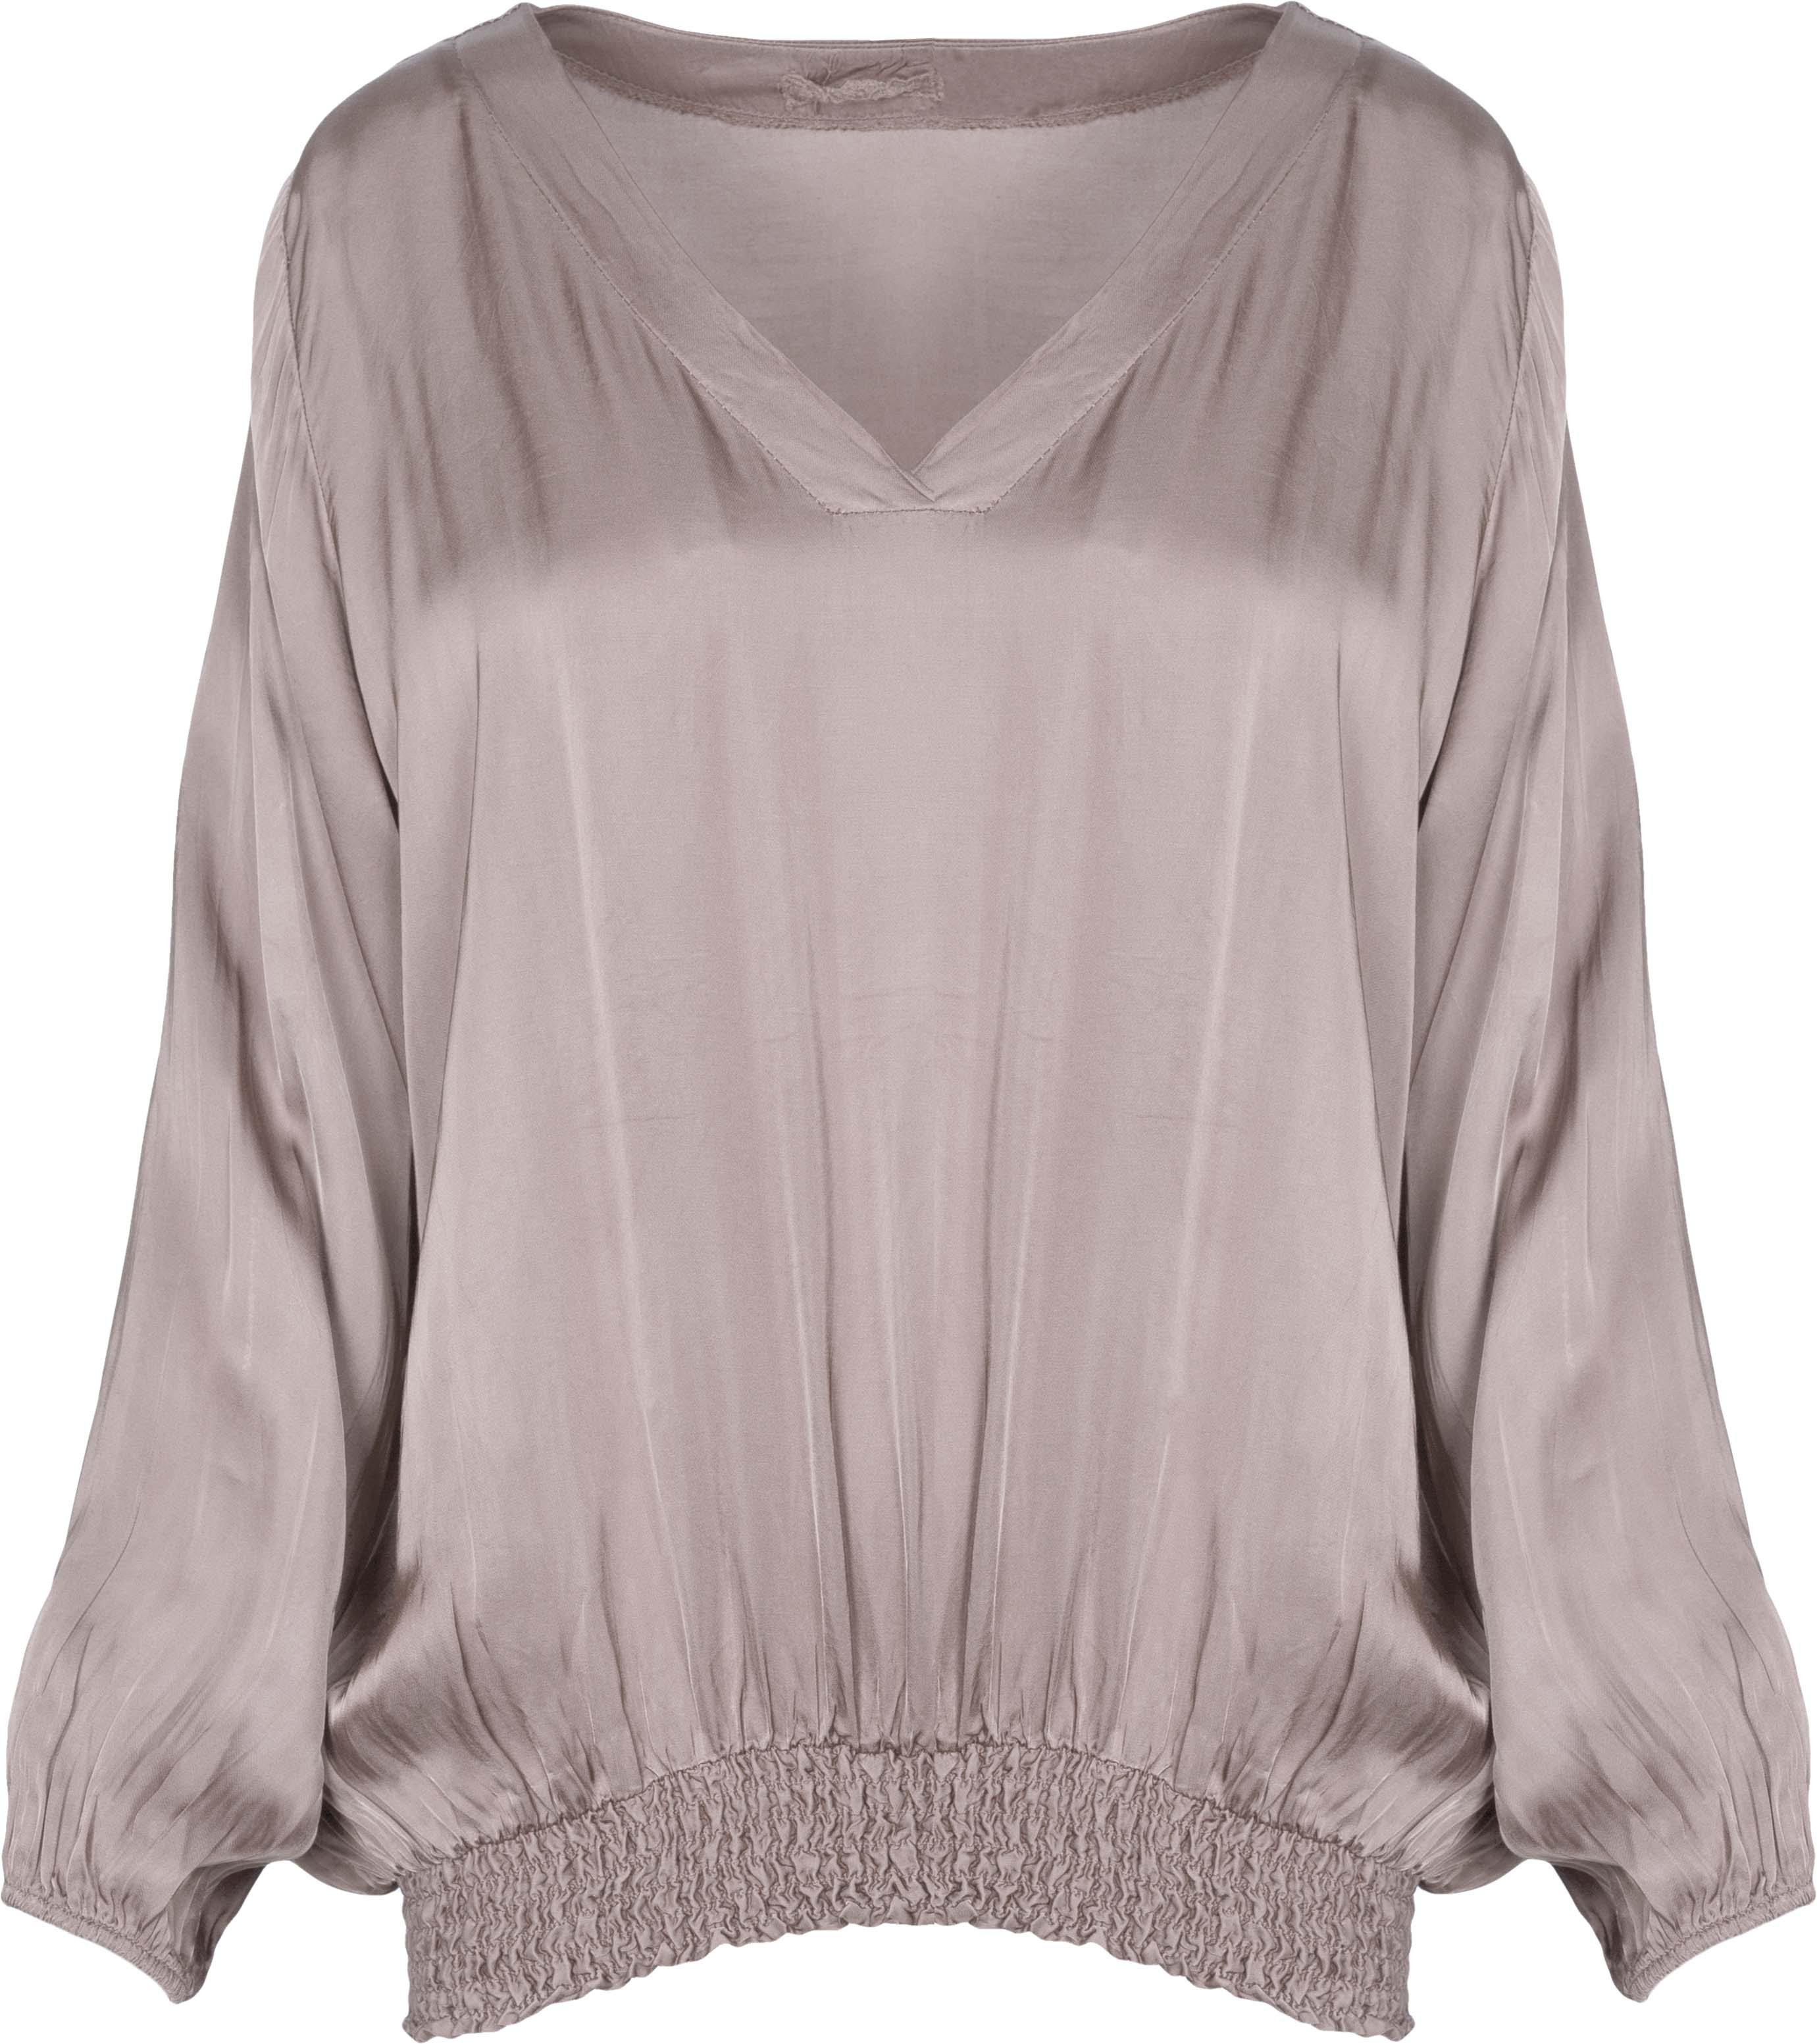 Woven Sateen Top in Taupe by M Made in  Italy - Weekends on 2nd Ave